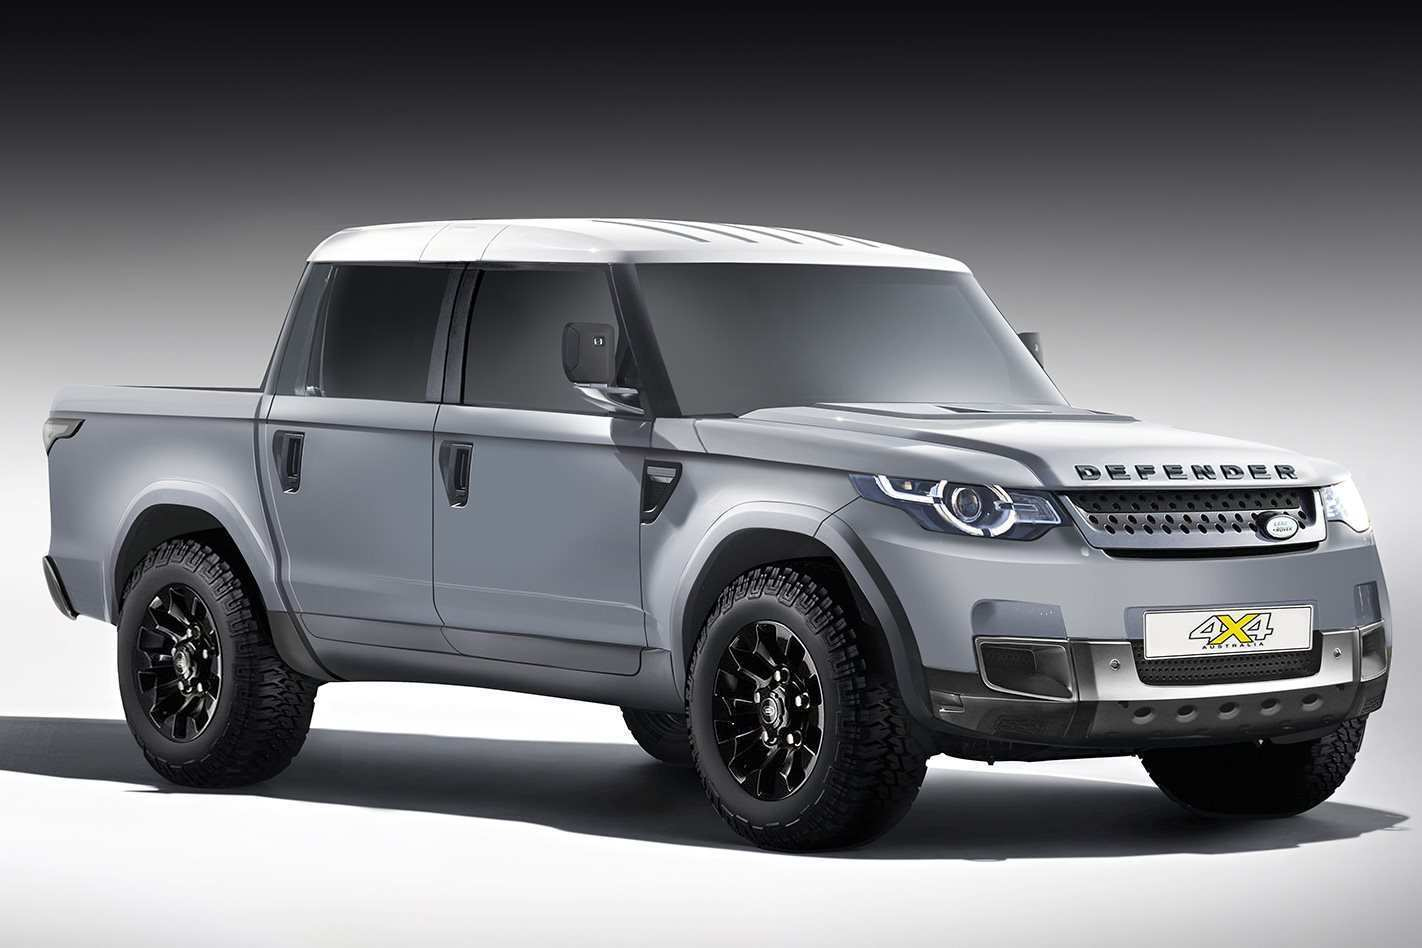 33 The 2020 Land Rover Defender Exterior